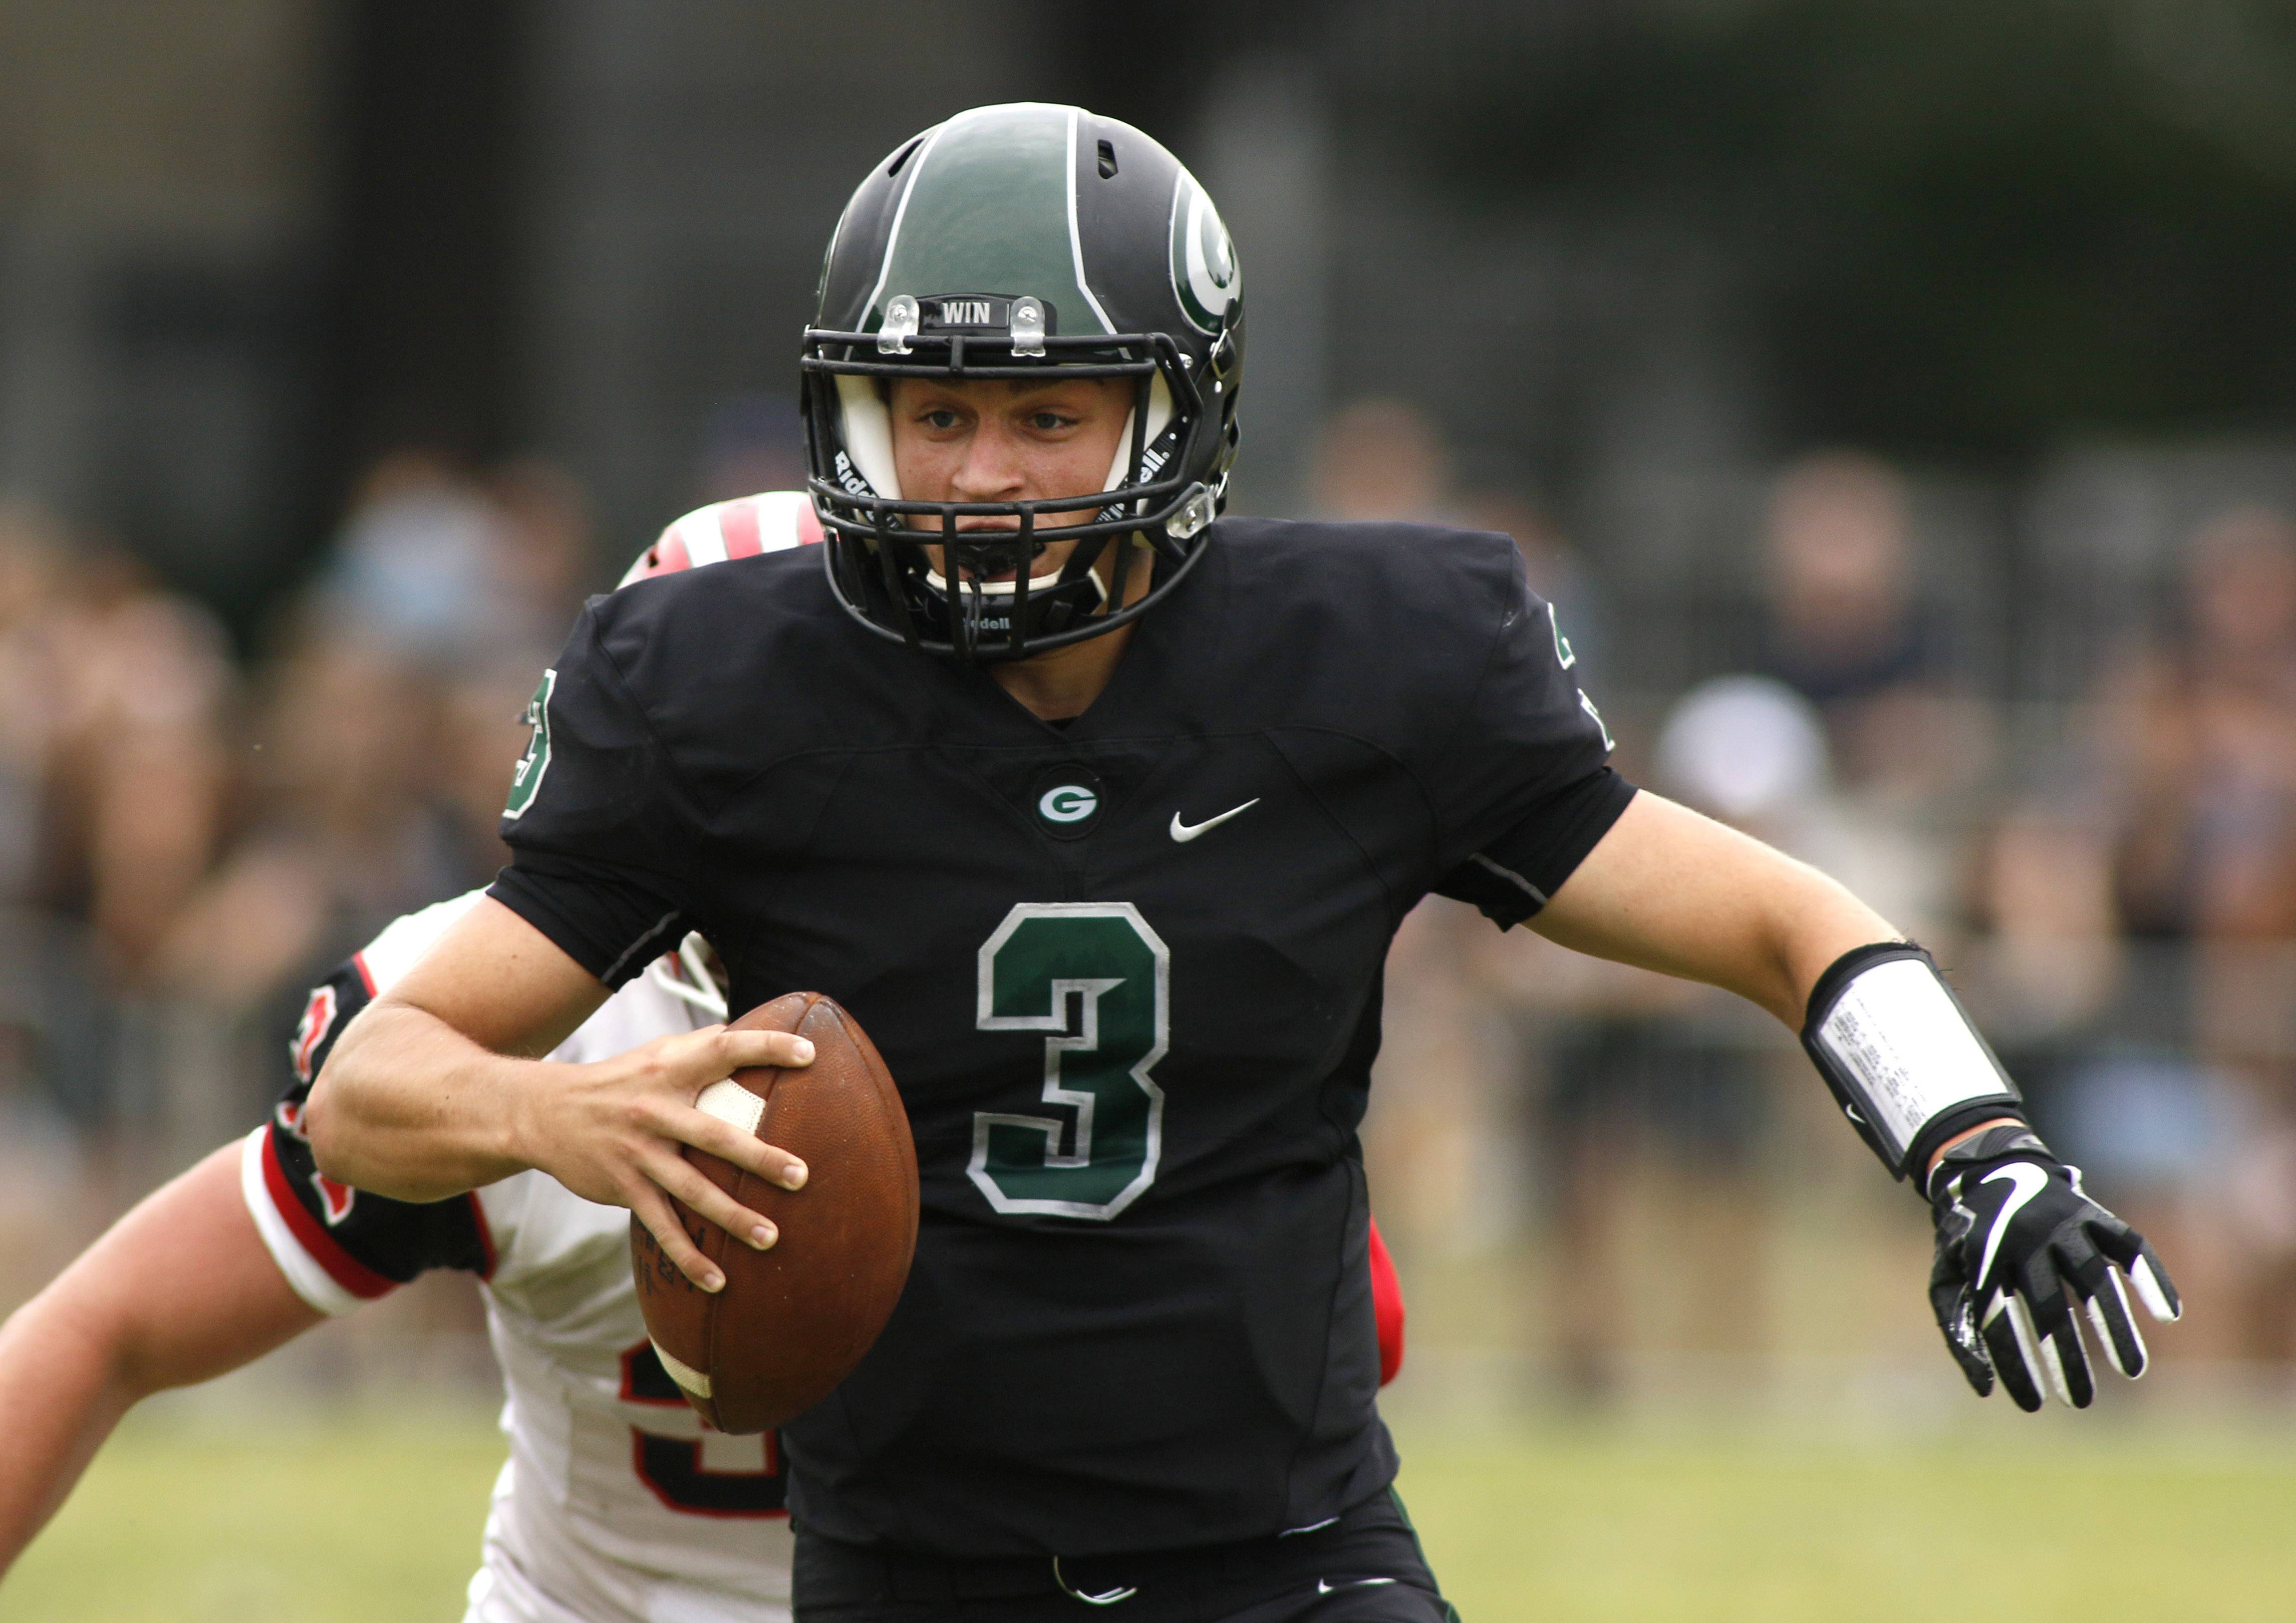 Glenbard West quarterback Alex Hollensbe scrambles for first-half yardage against Maine South.